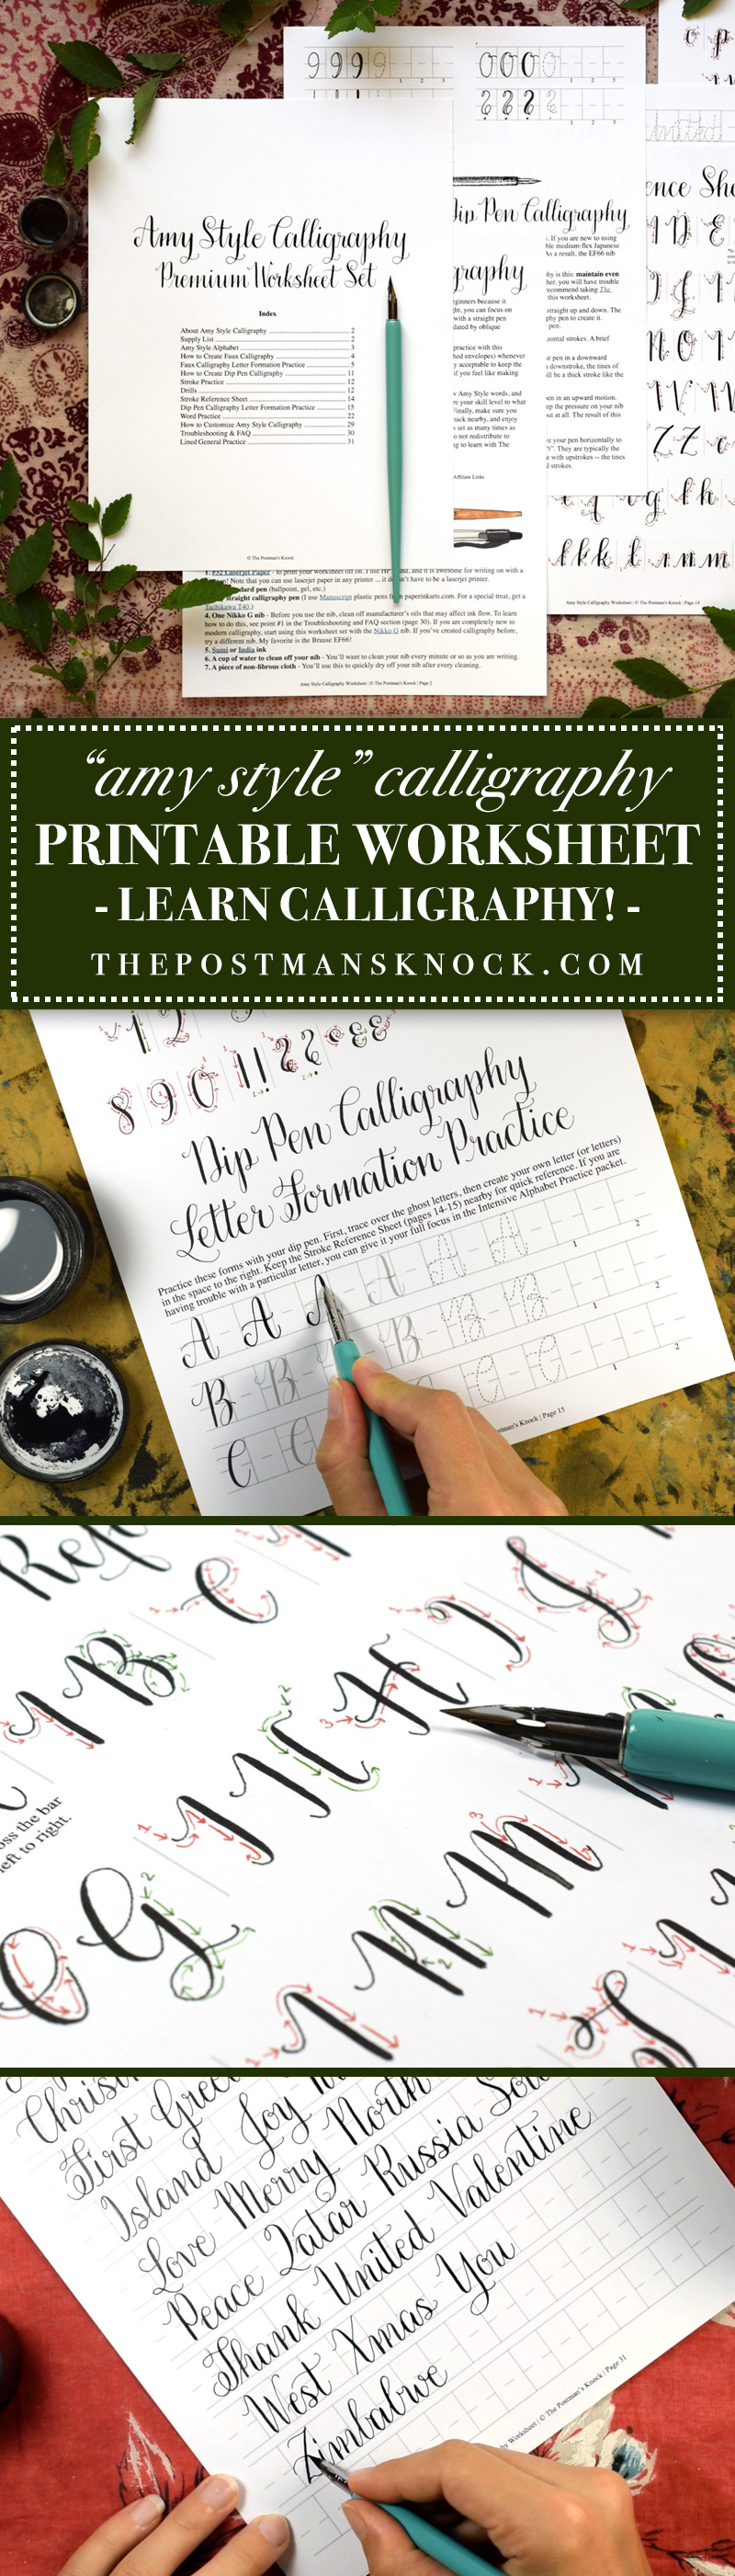 Introducing the New Amy Style Calligraphy Worksheet | The Postman's Knock